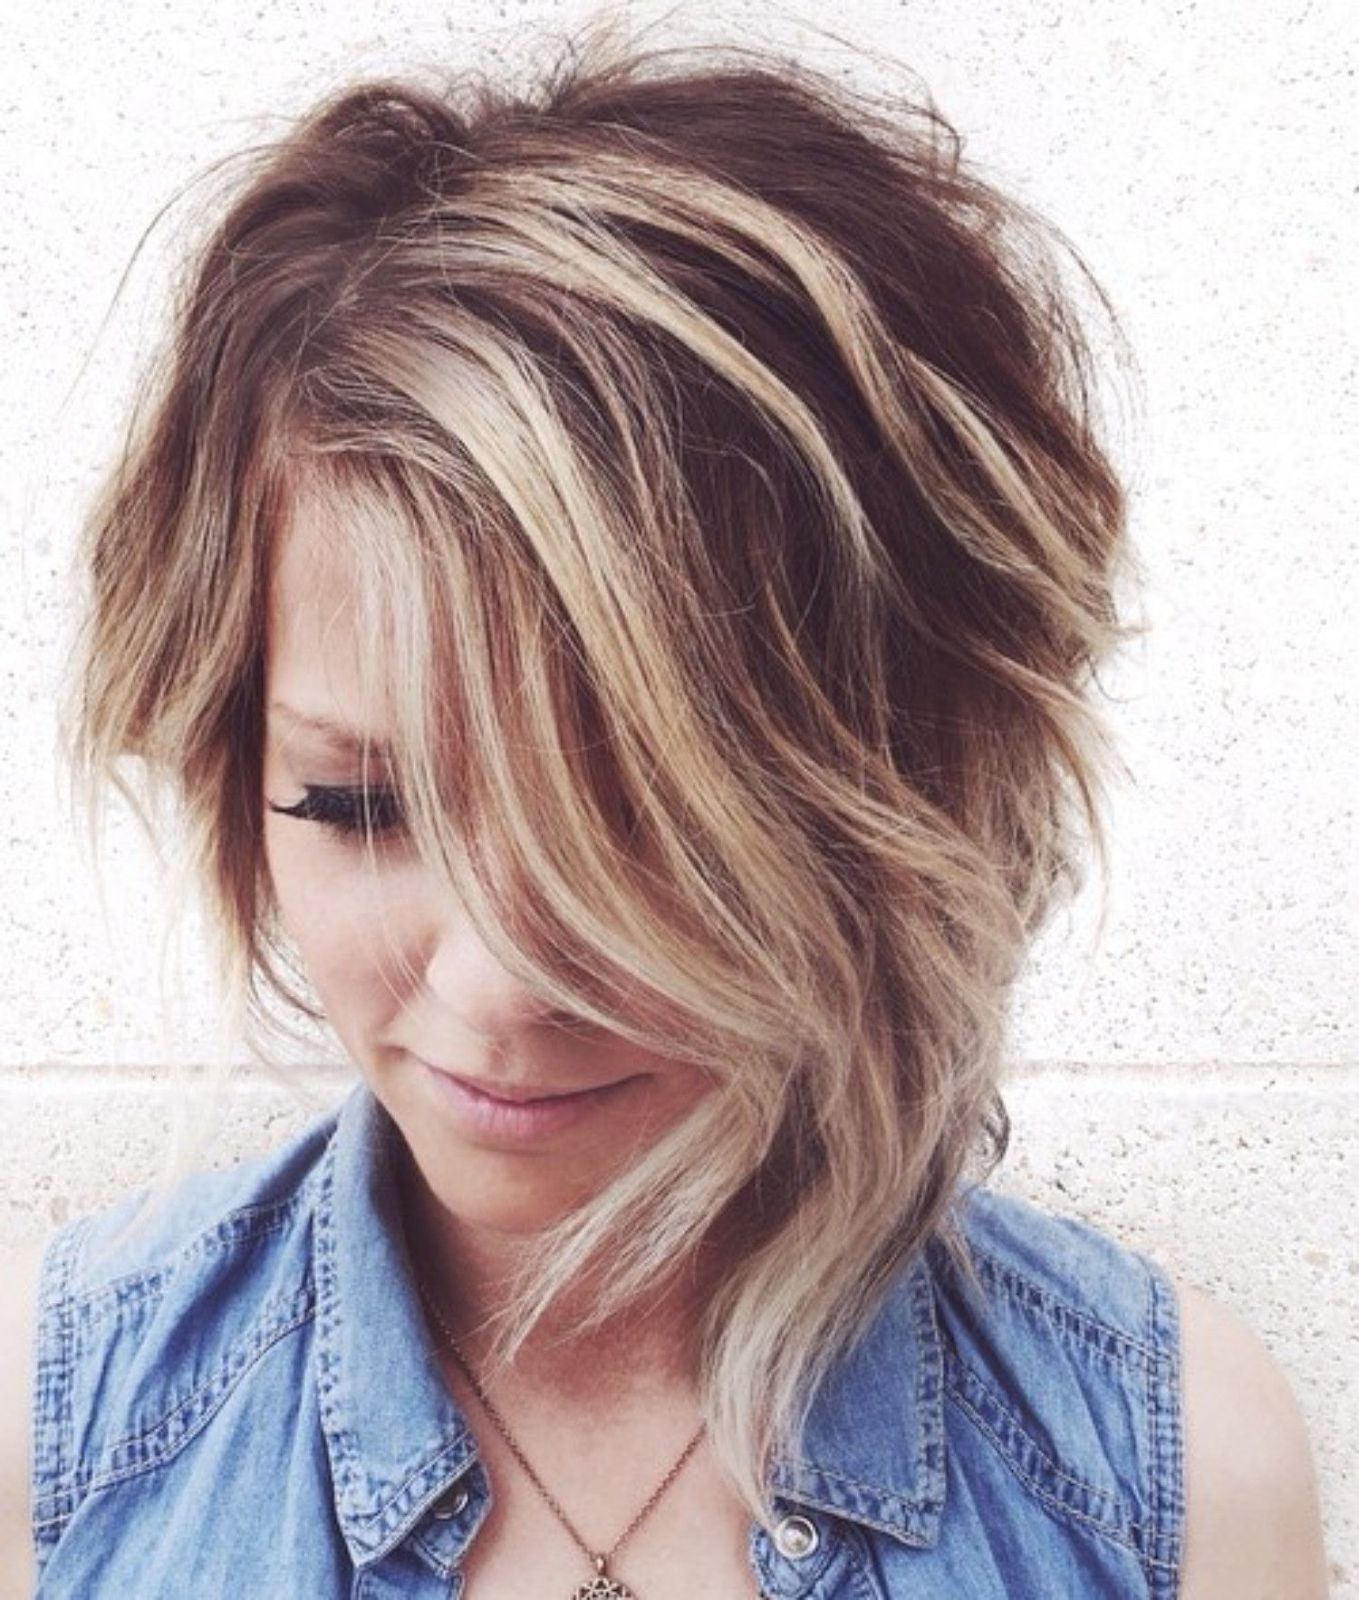 100 Mind Blowing Short Hairstyles For Fine Hair Hair In